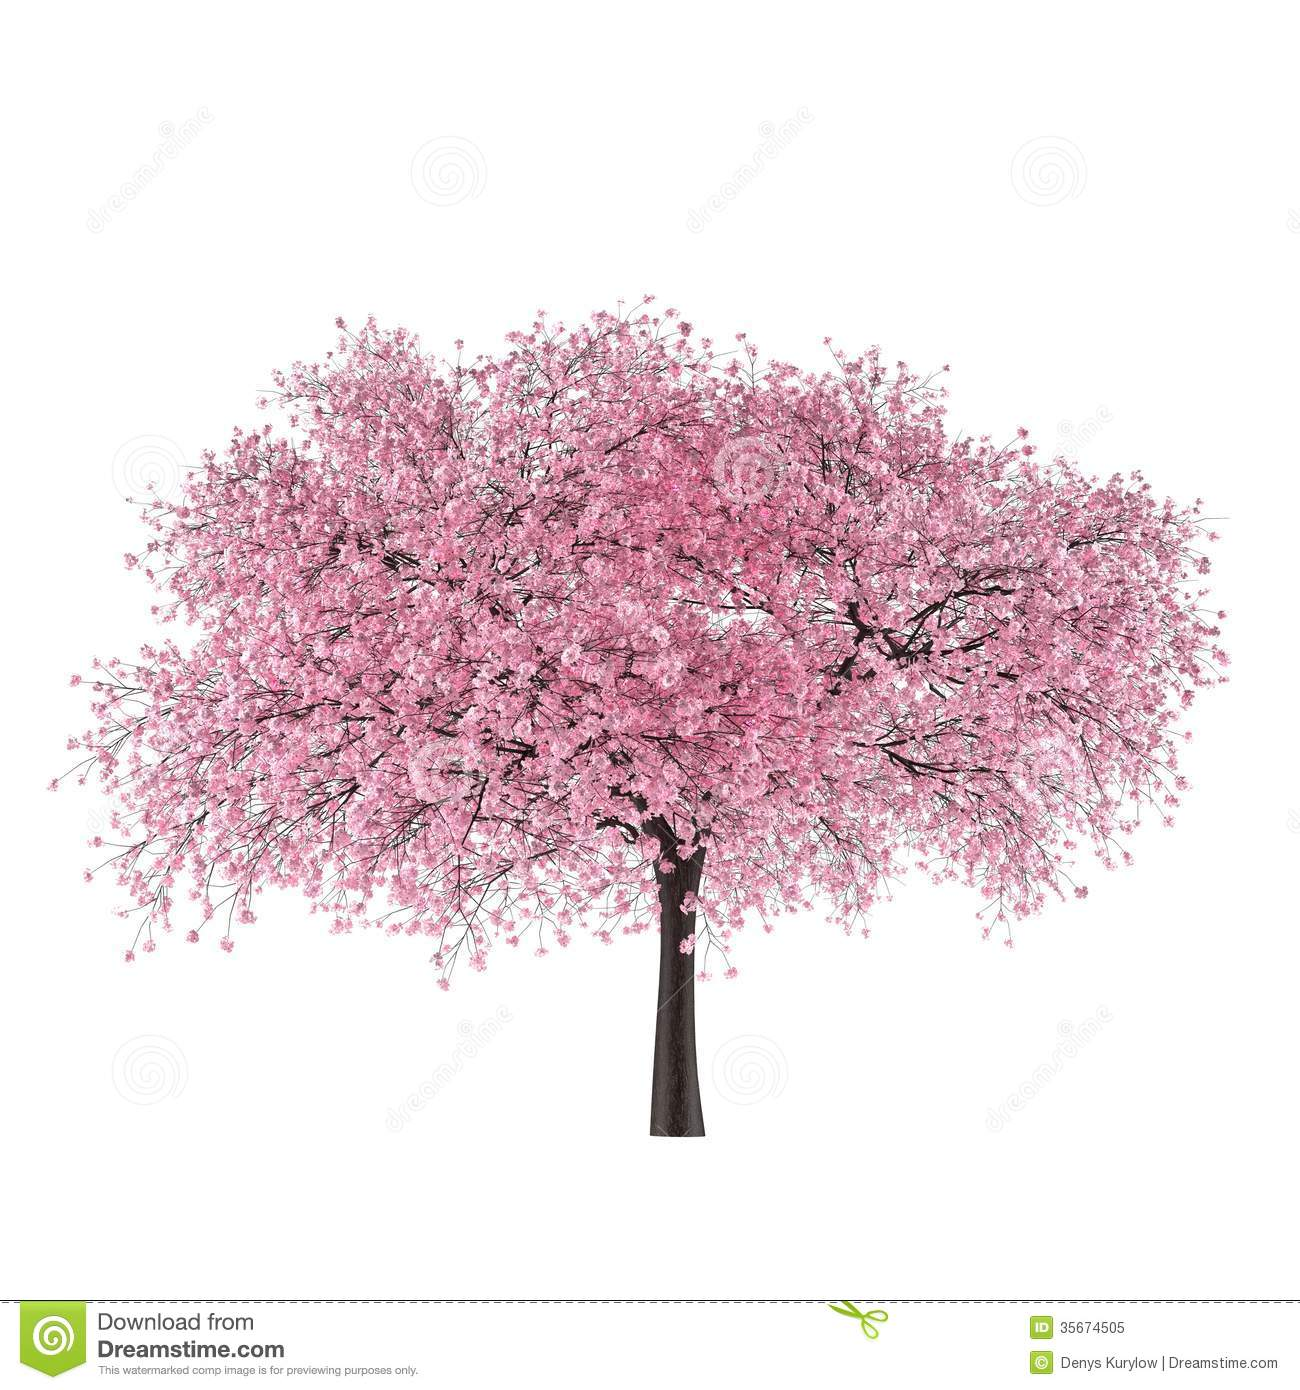 Prunus Blossom clipart #16, Download drawings